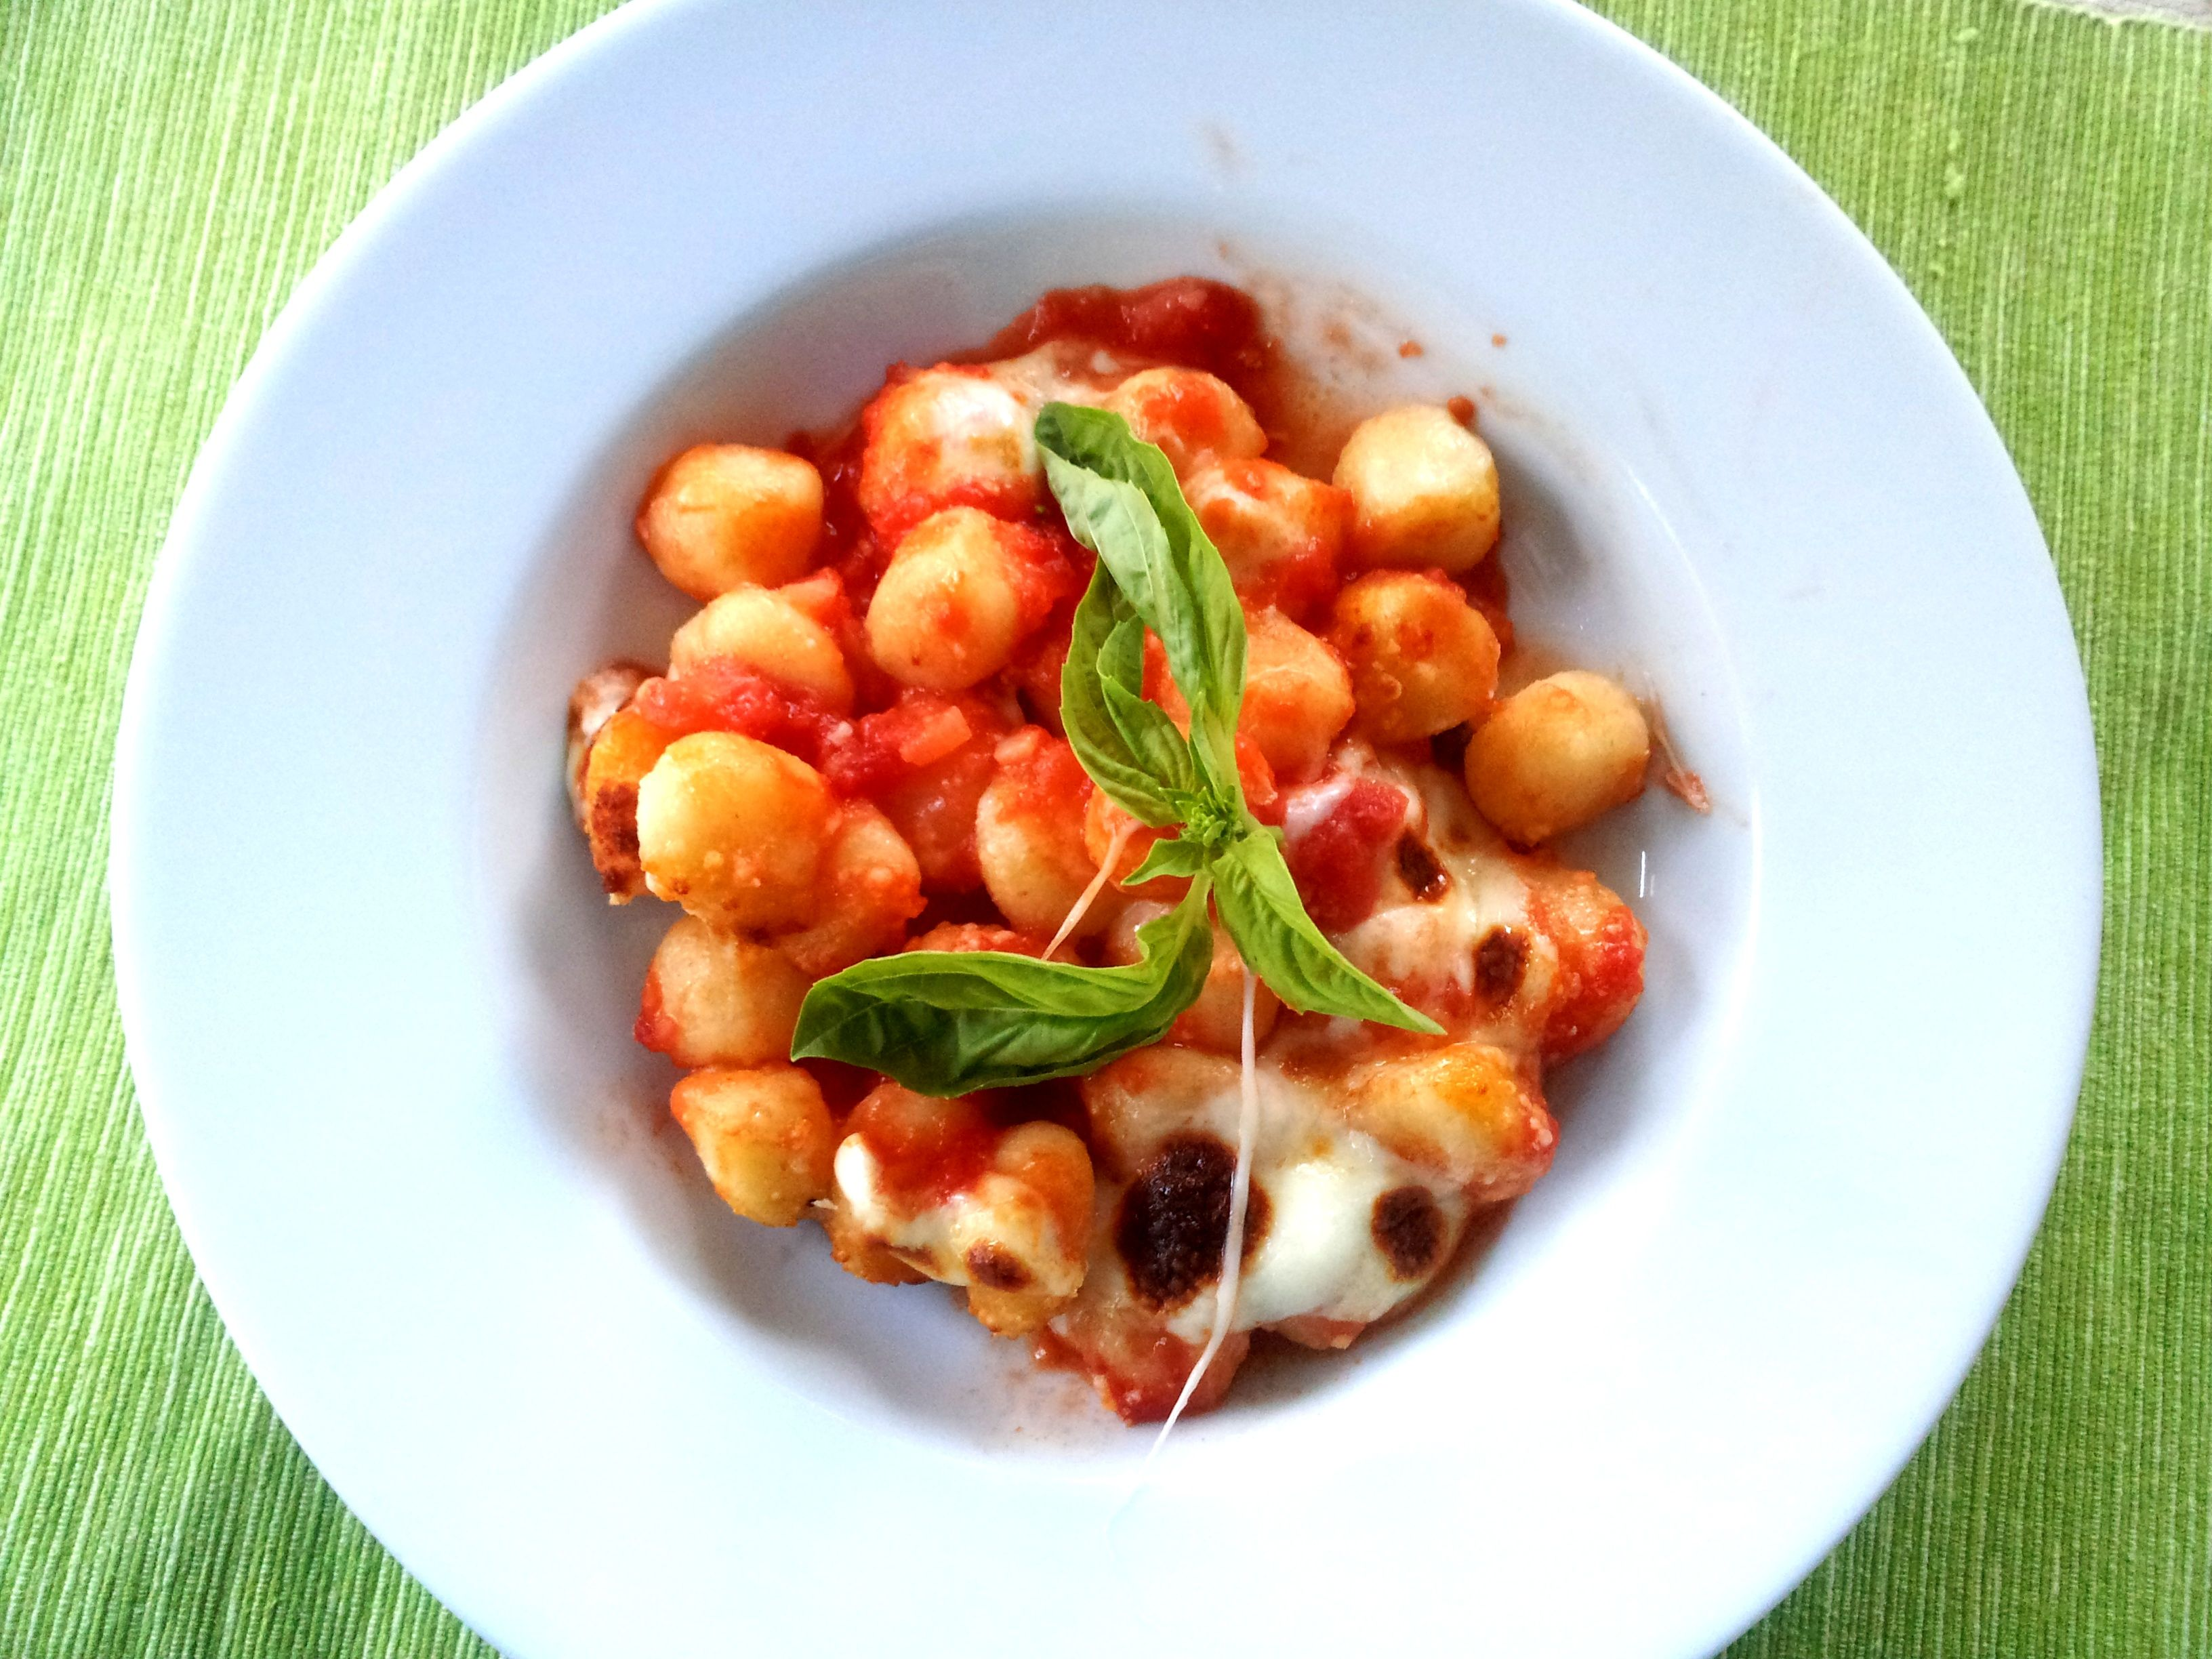 """Known as 'gnocchi alla sorrentina,' this classic Italian pasta dish that uses simple ingredients and tastes delicious,"" says saretta. ""Use homemade or store-bought gnocchi."""